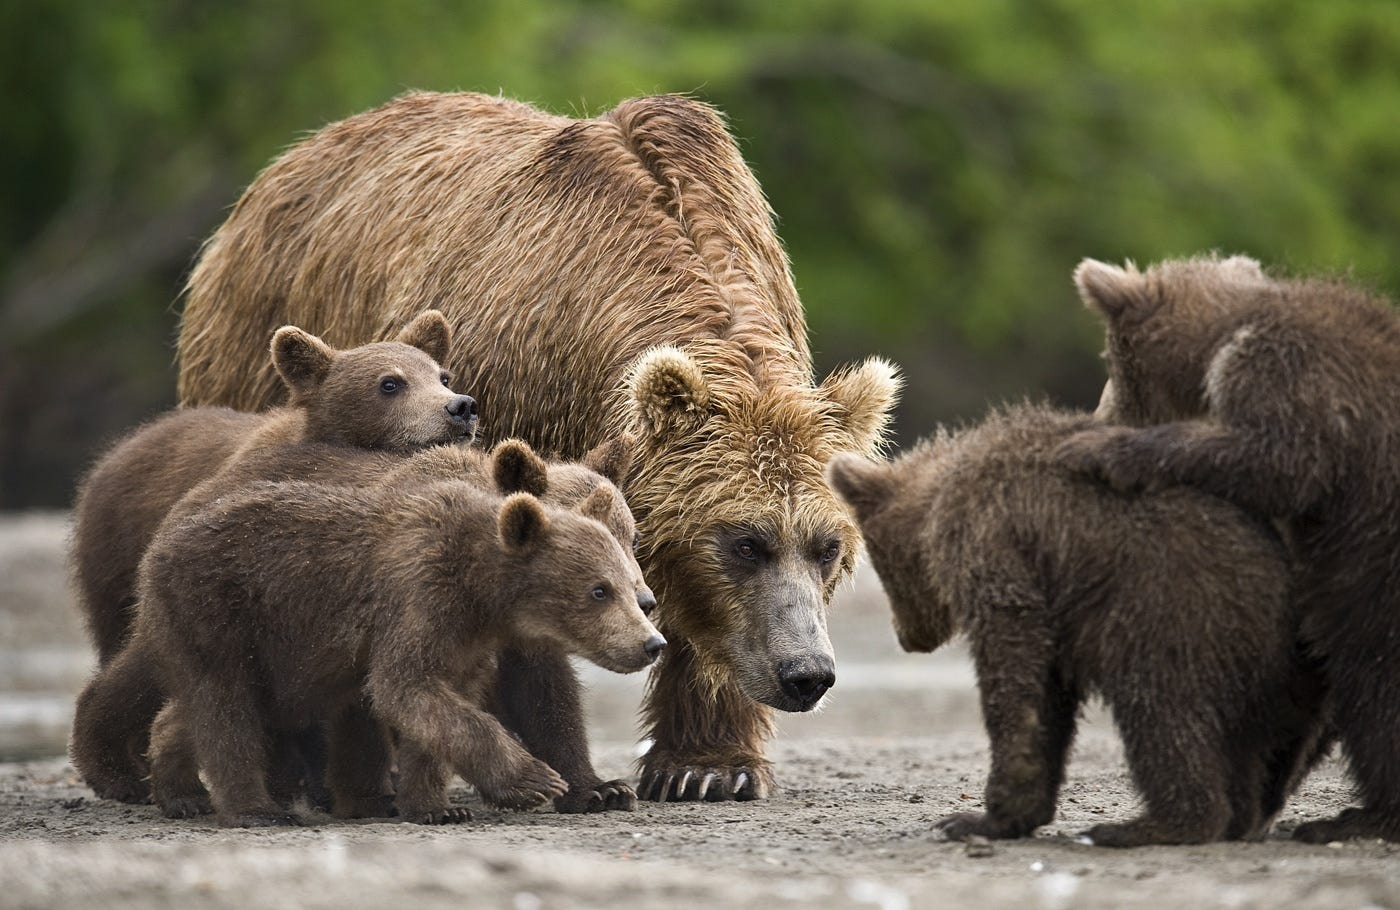 Ungentle charm of Kamchatka bears in photos by Sergey Ivanov - 7